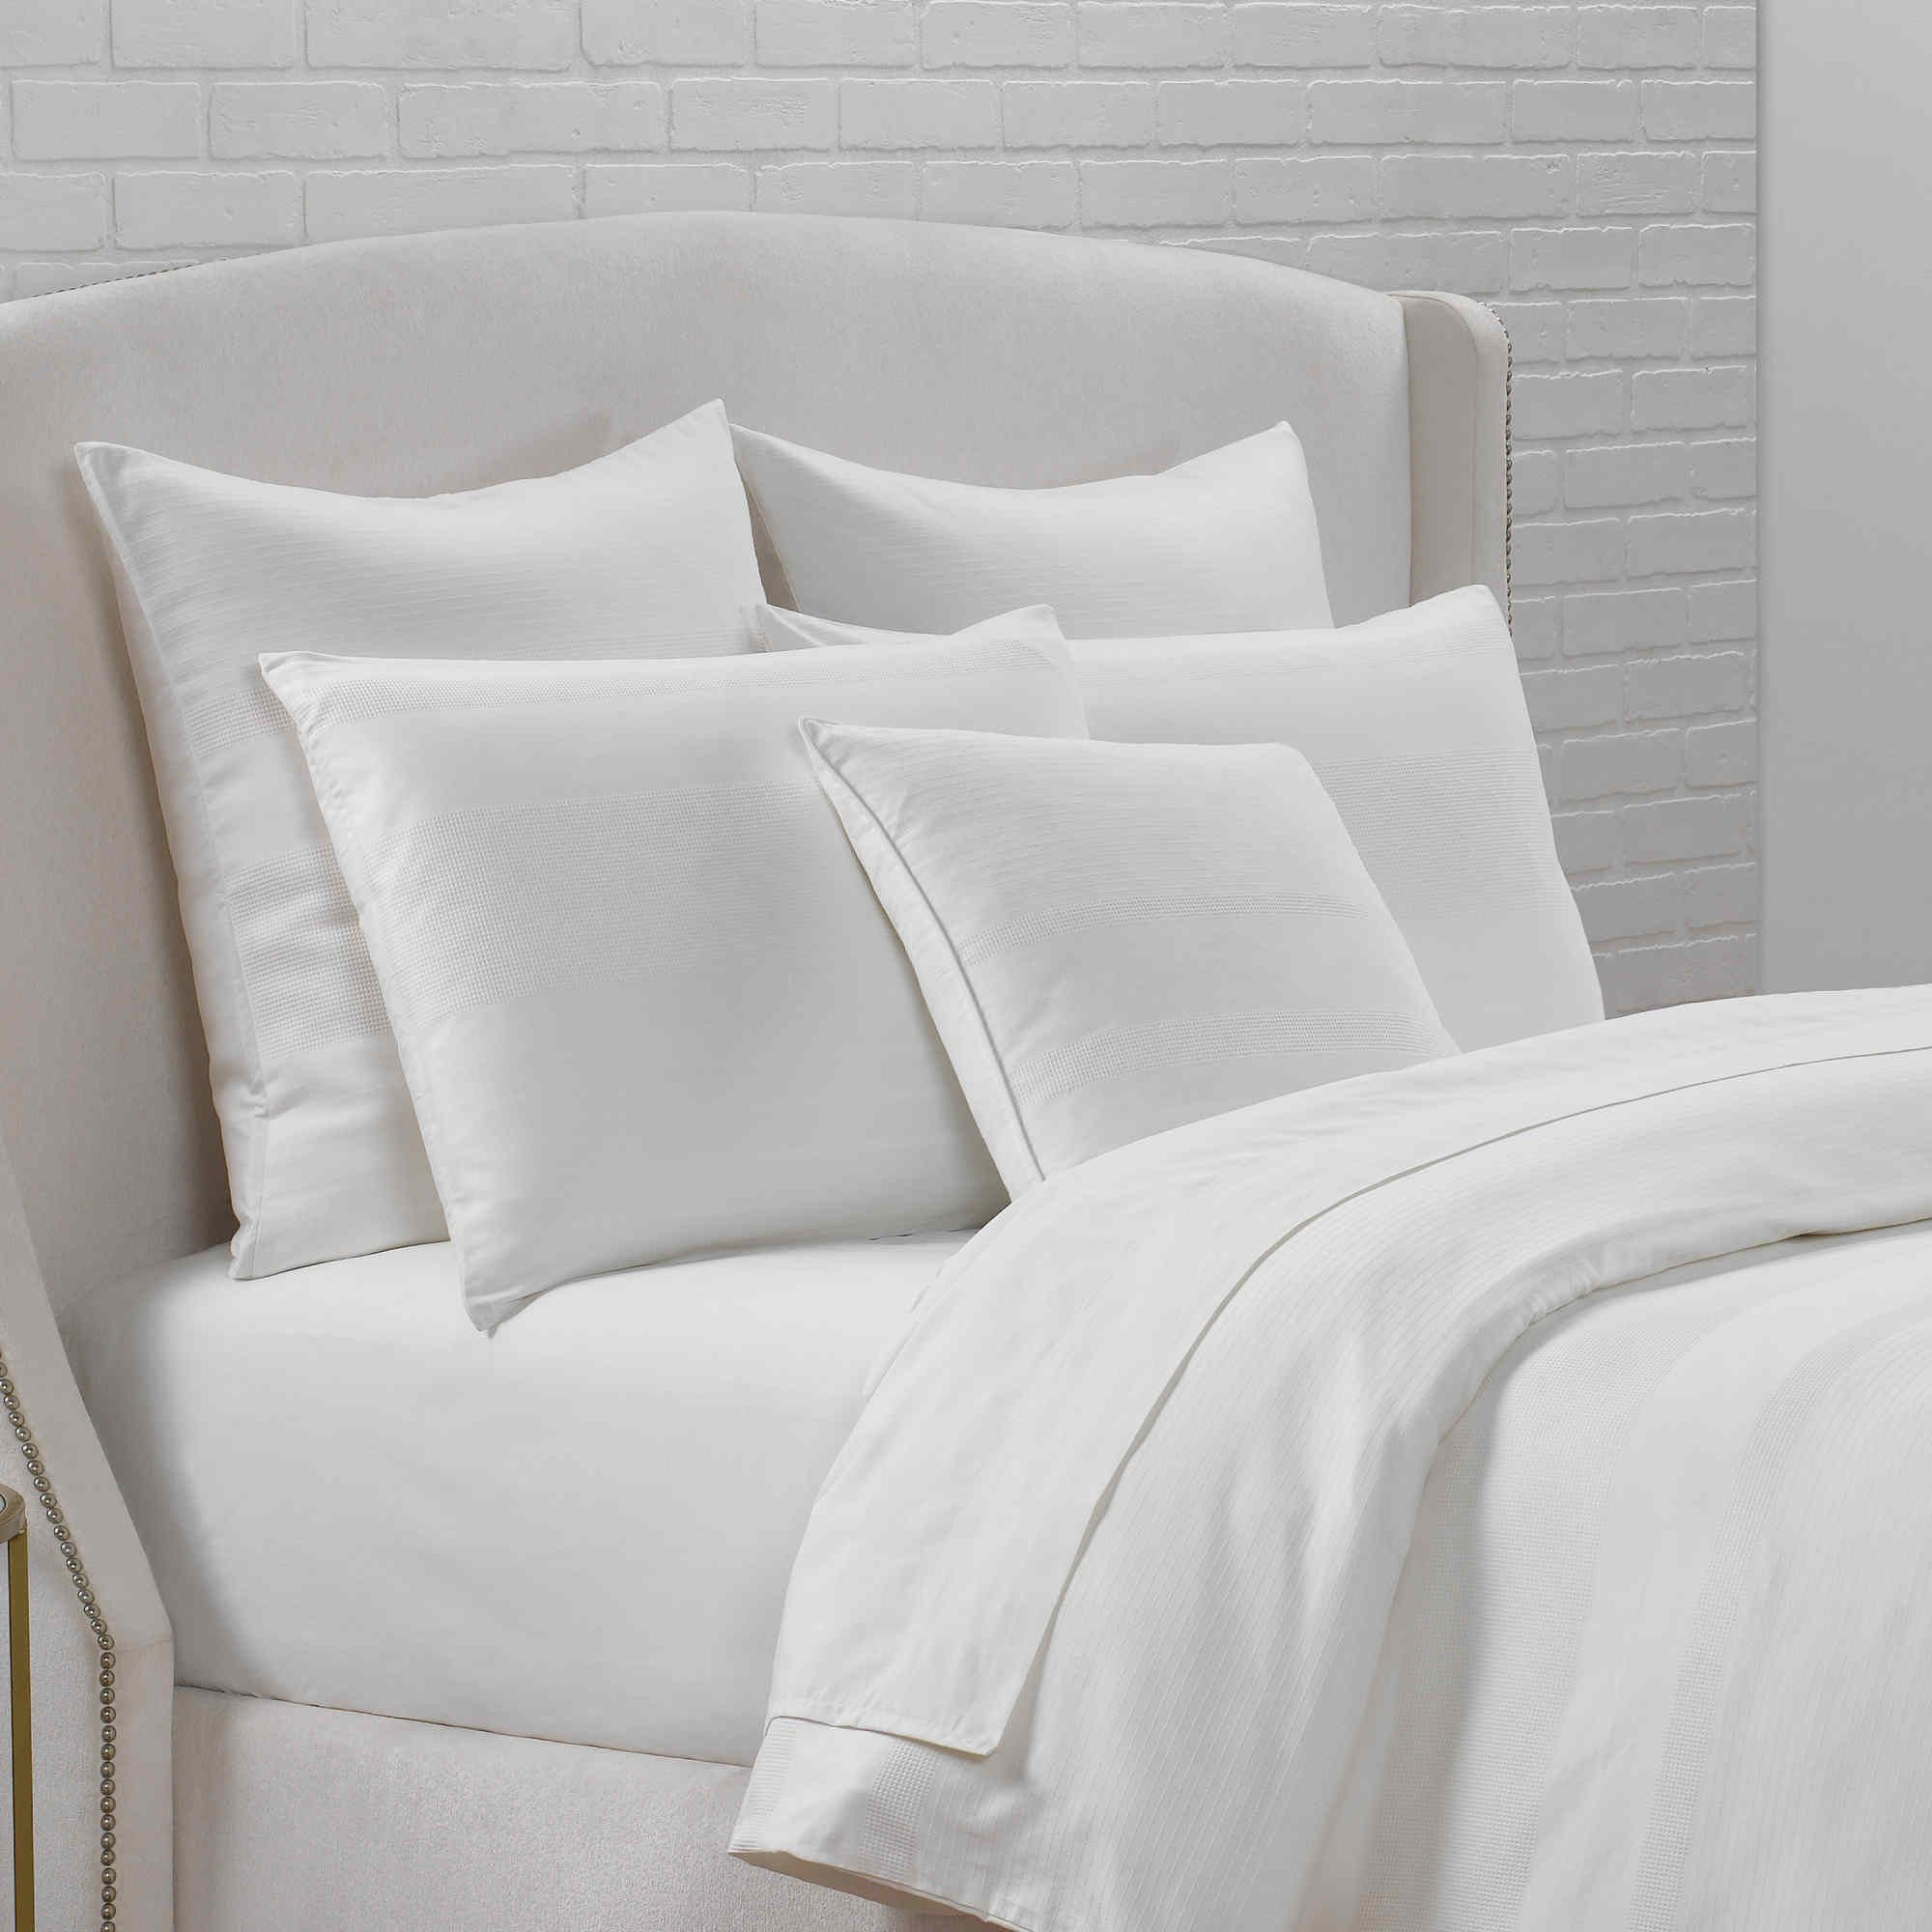 Portico Sloane Square Bedding Organic Cotton Duvet Cover White